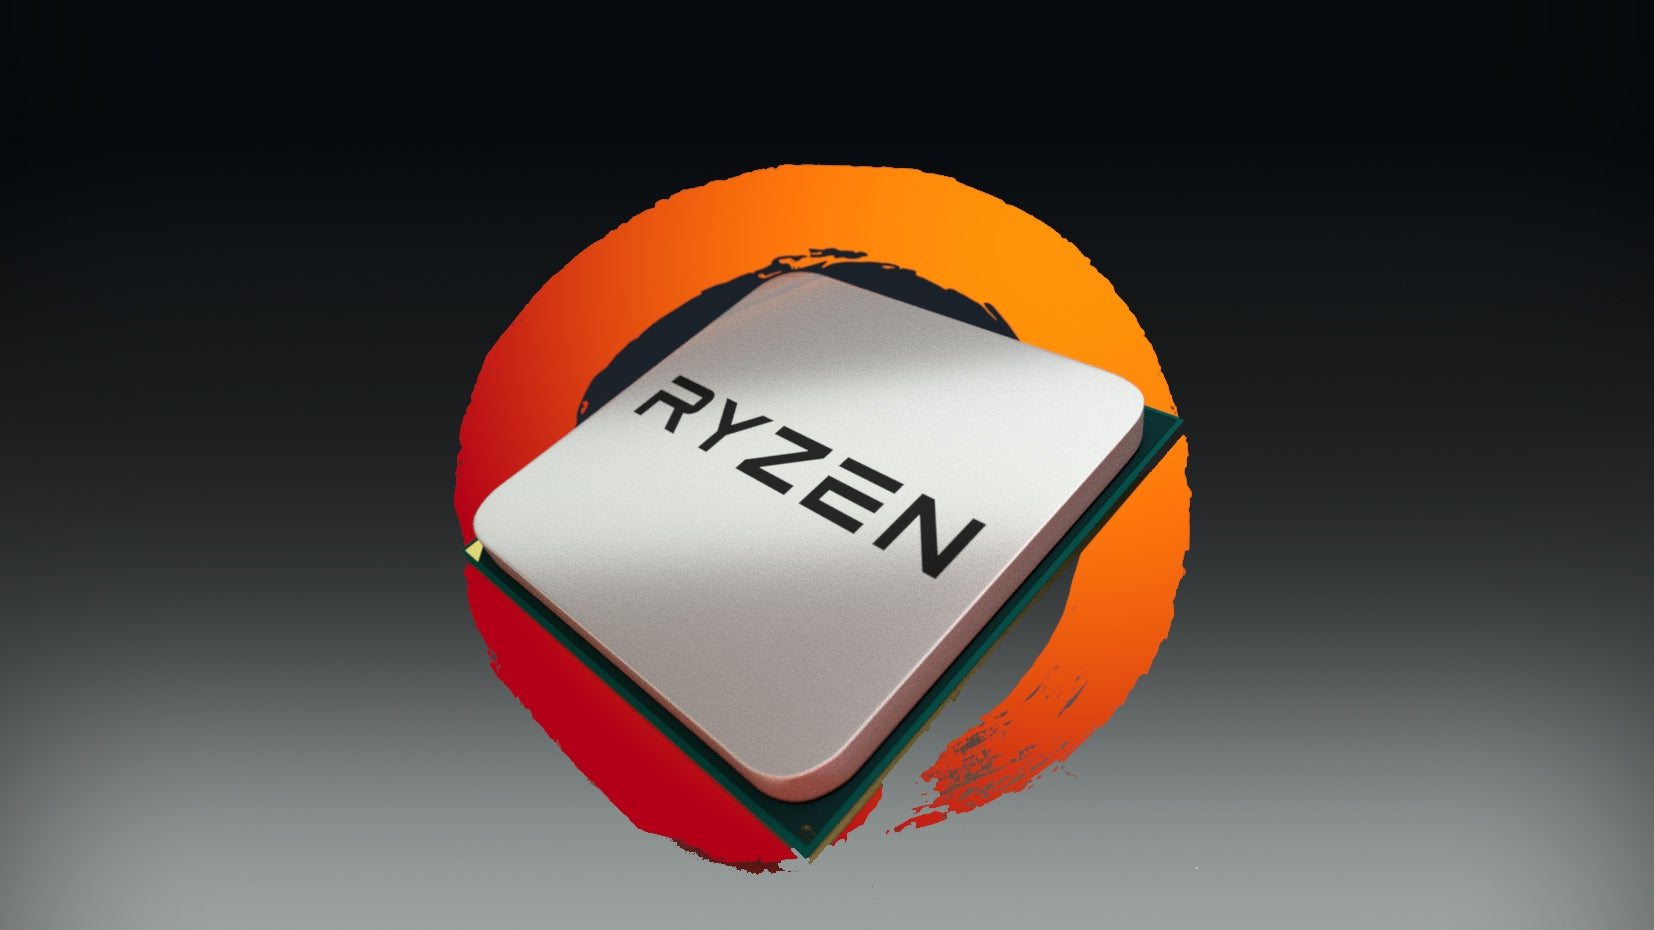 AMD Ryzen 5 1600X and 1500X Scheduled to Arrive Soon